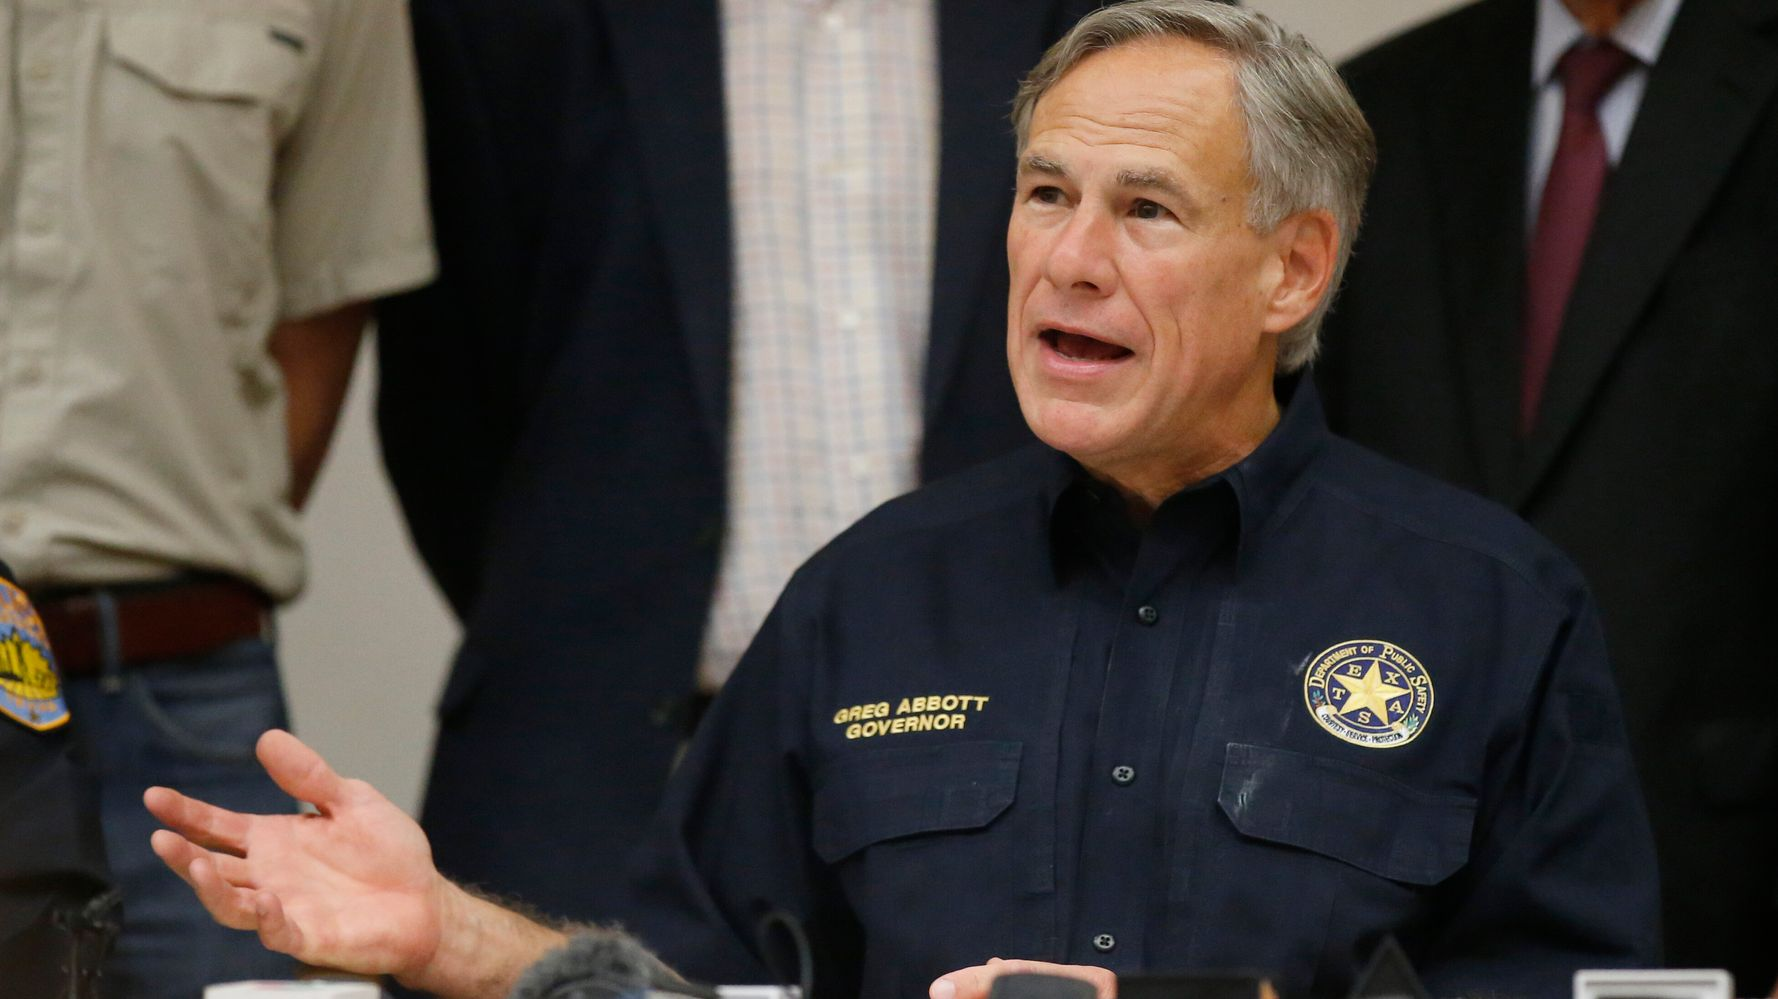 Texas Governor's Executive Orders After Mass Shootings Don't